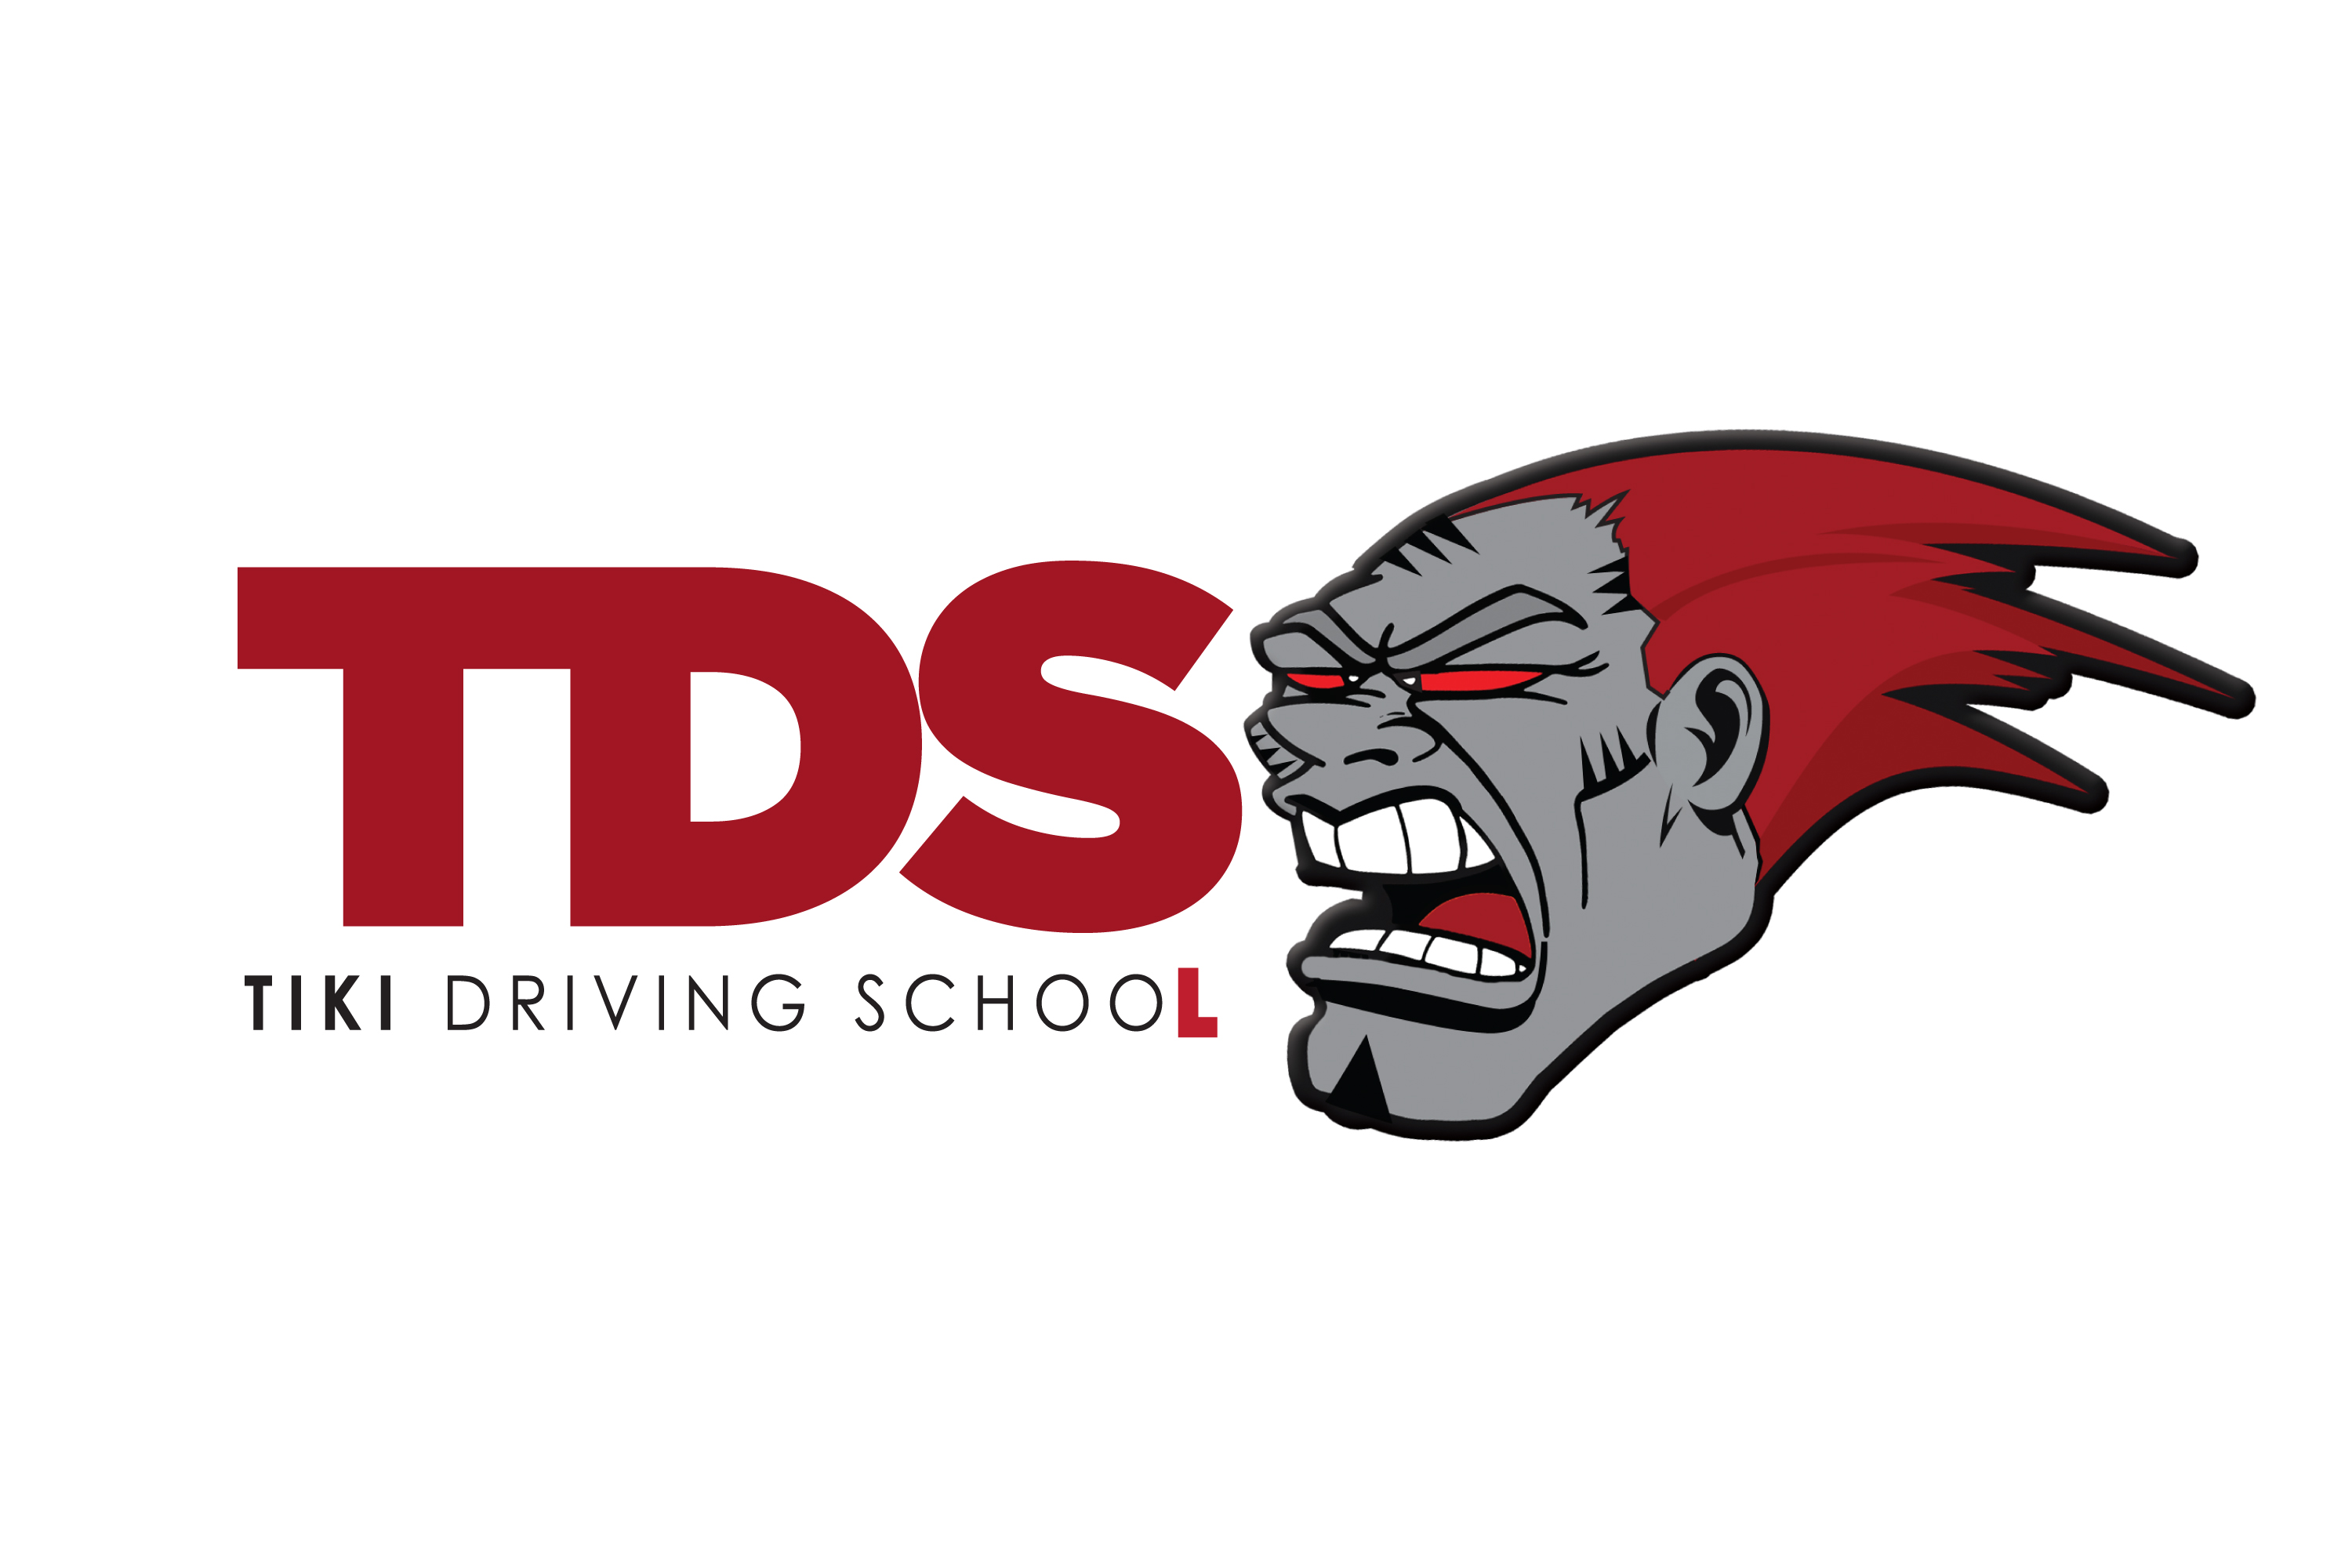 Tiki Driving School